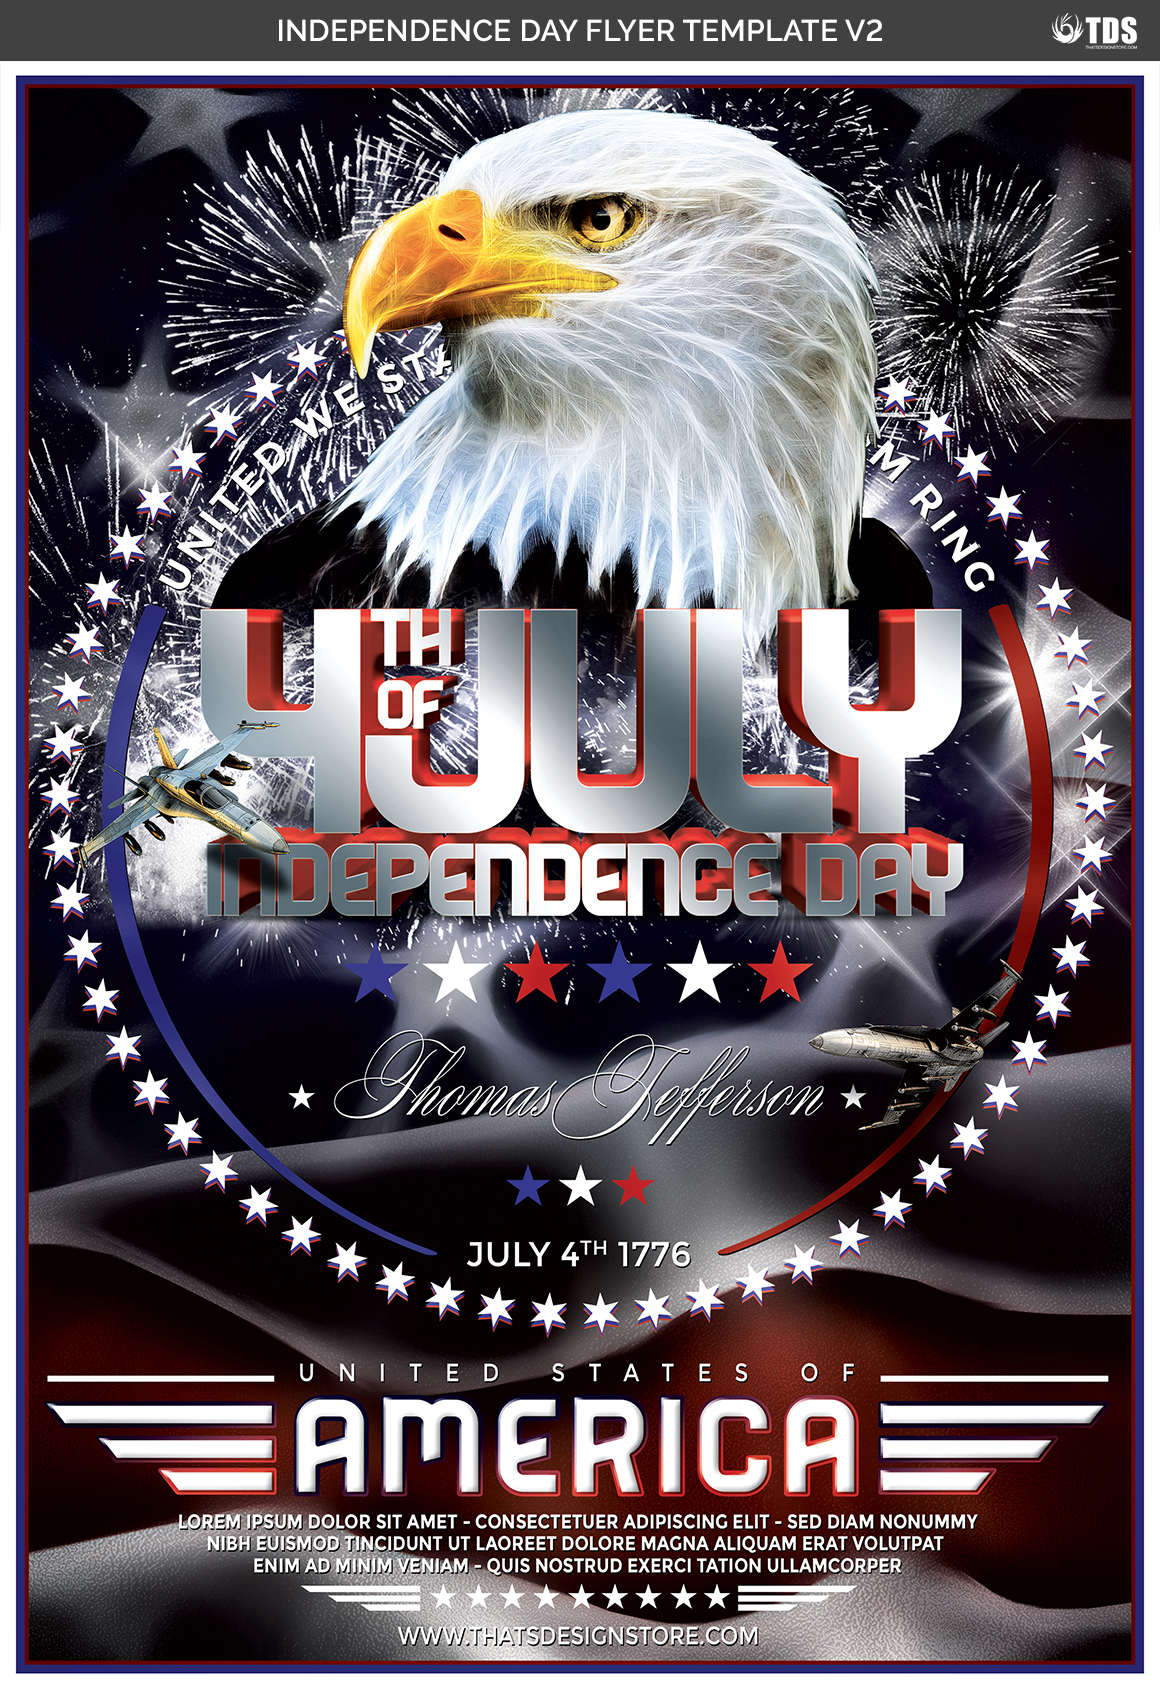 Independence Day Flyer Template V2 example image 4